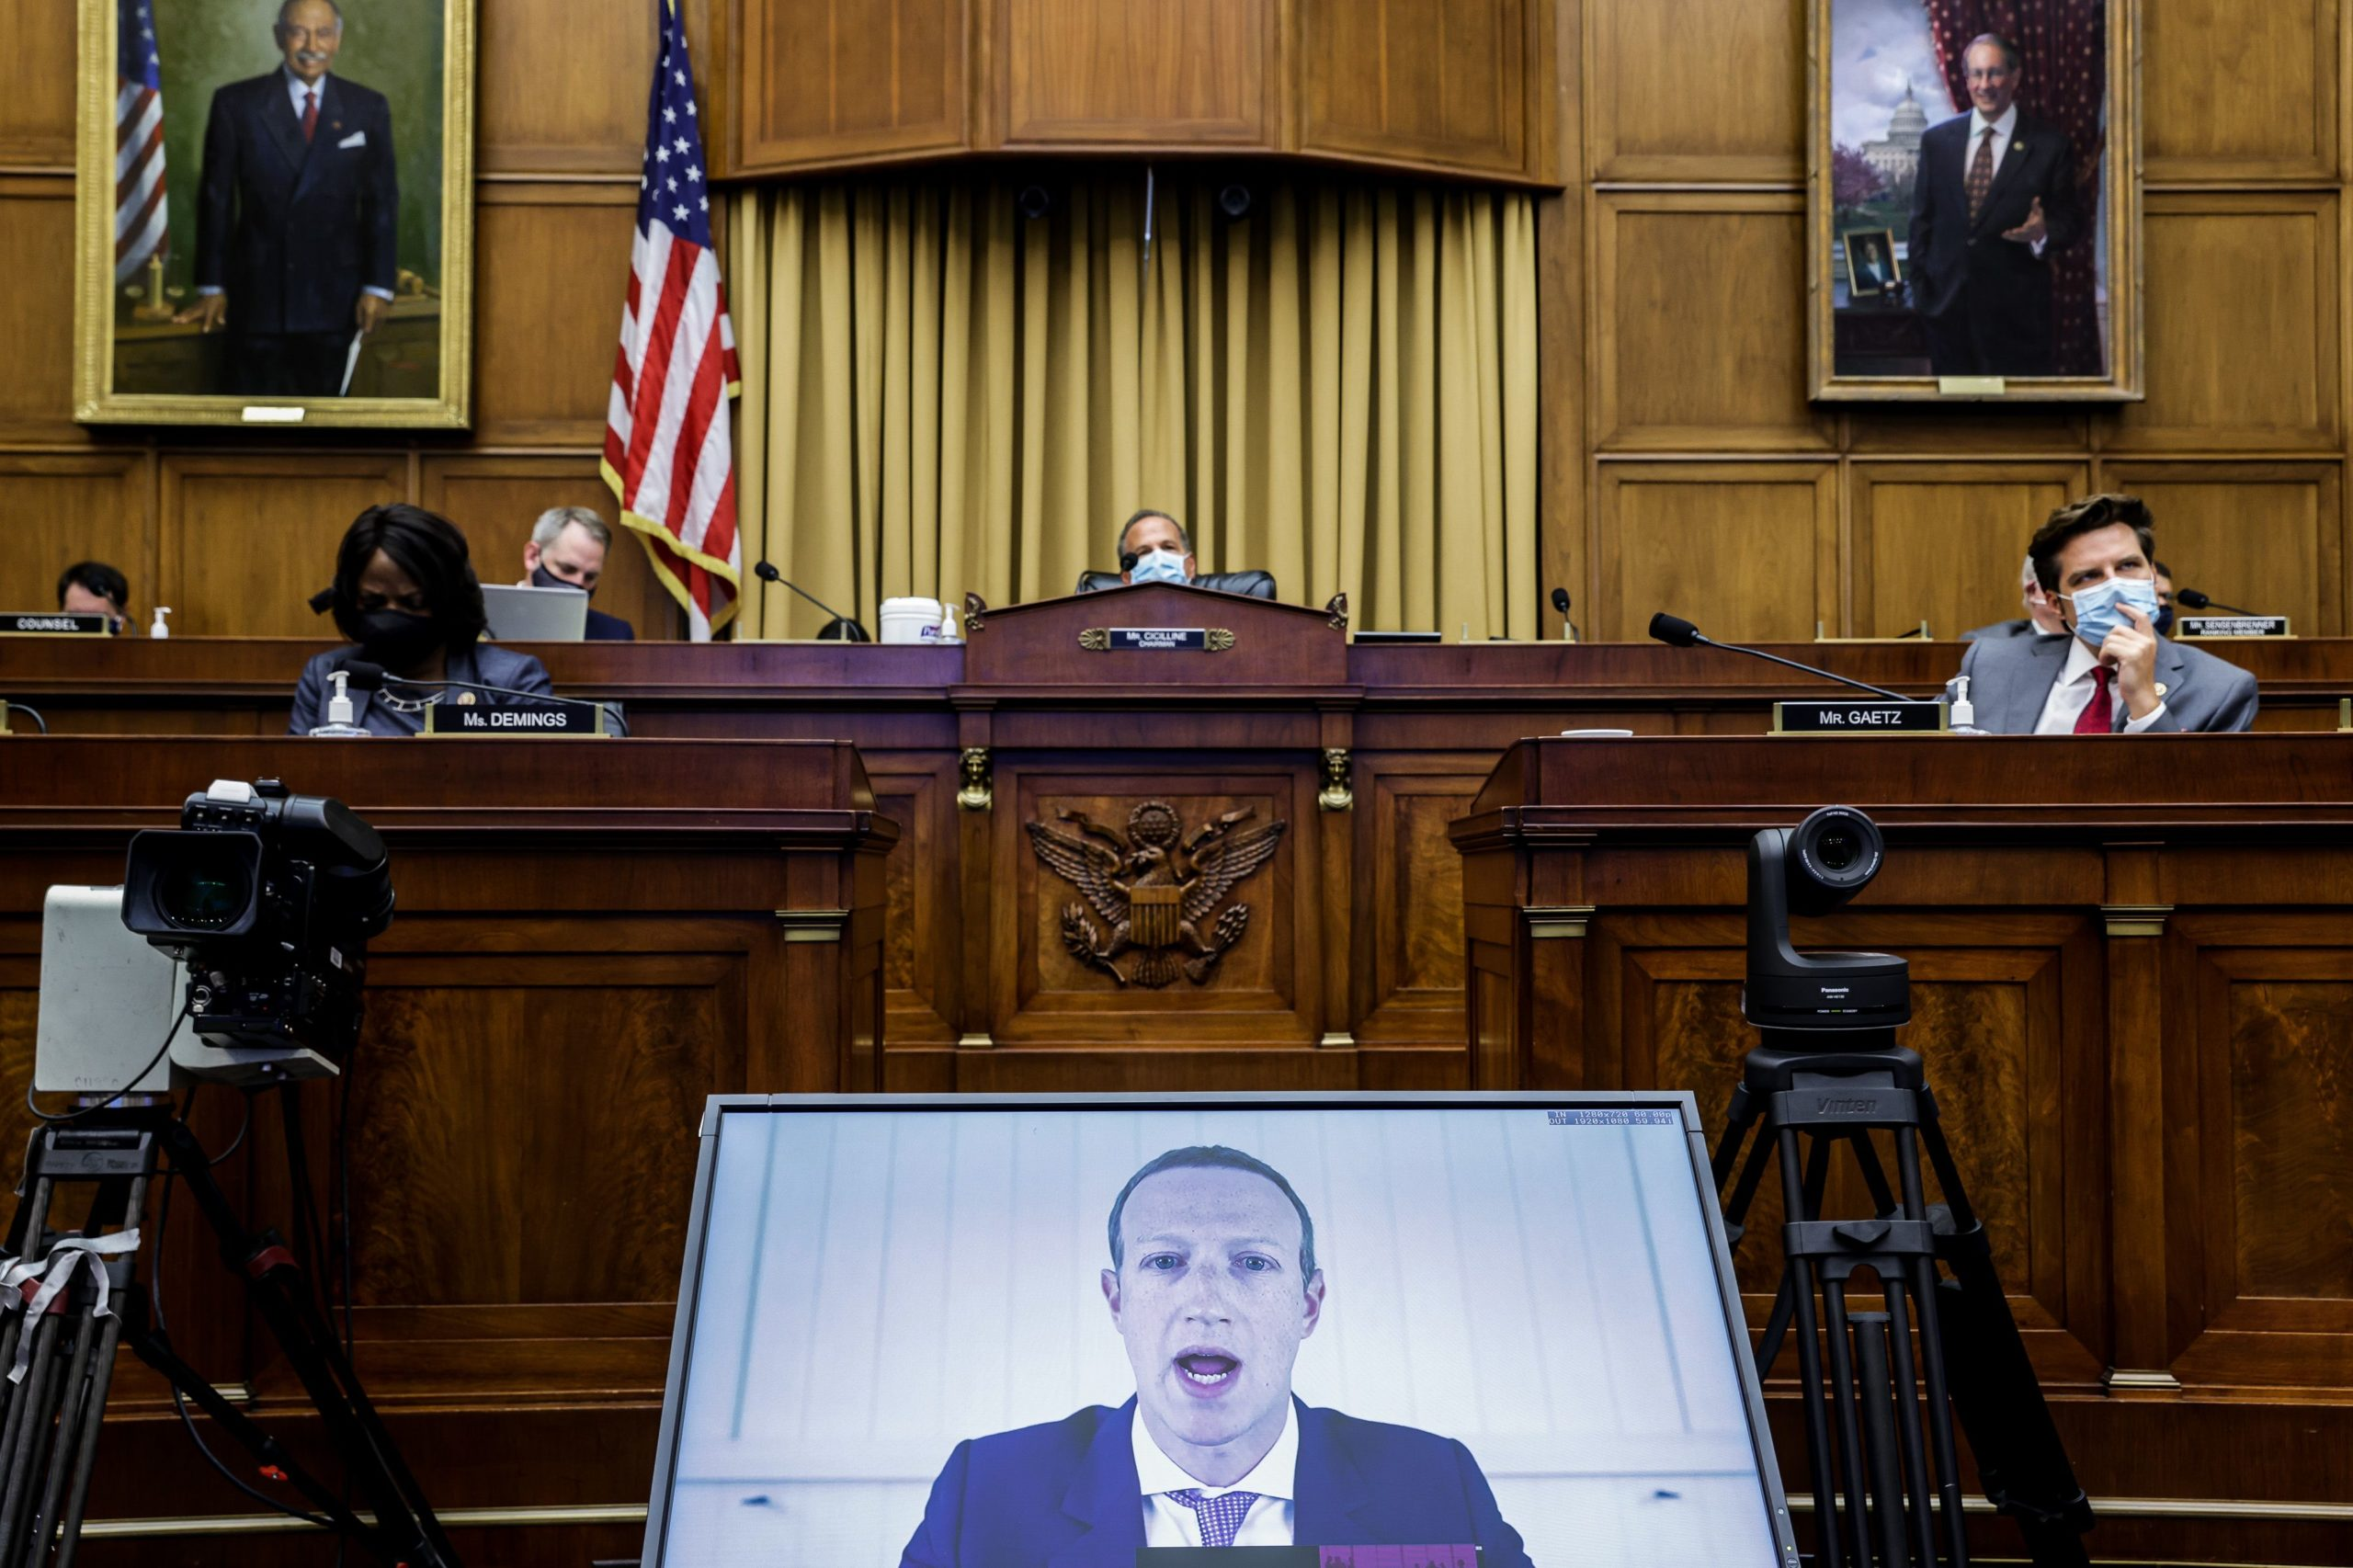 Facebook CEO Mark Zuckerberg testifies before the House Judiciary Committee on July 29. (Graeme Jennings/Pool/AFP via Getty Images)